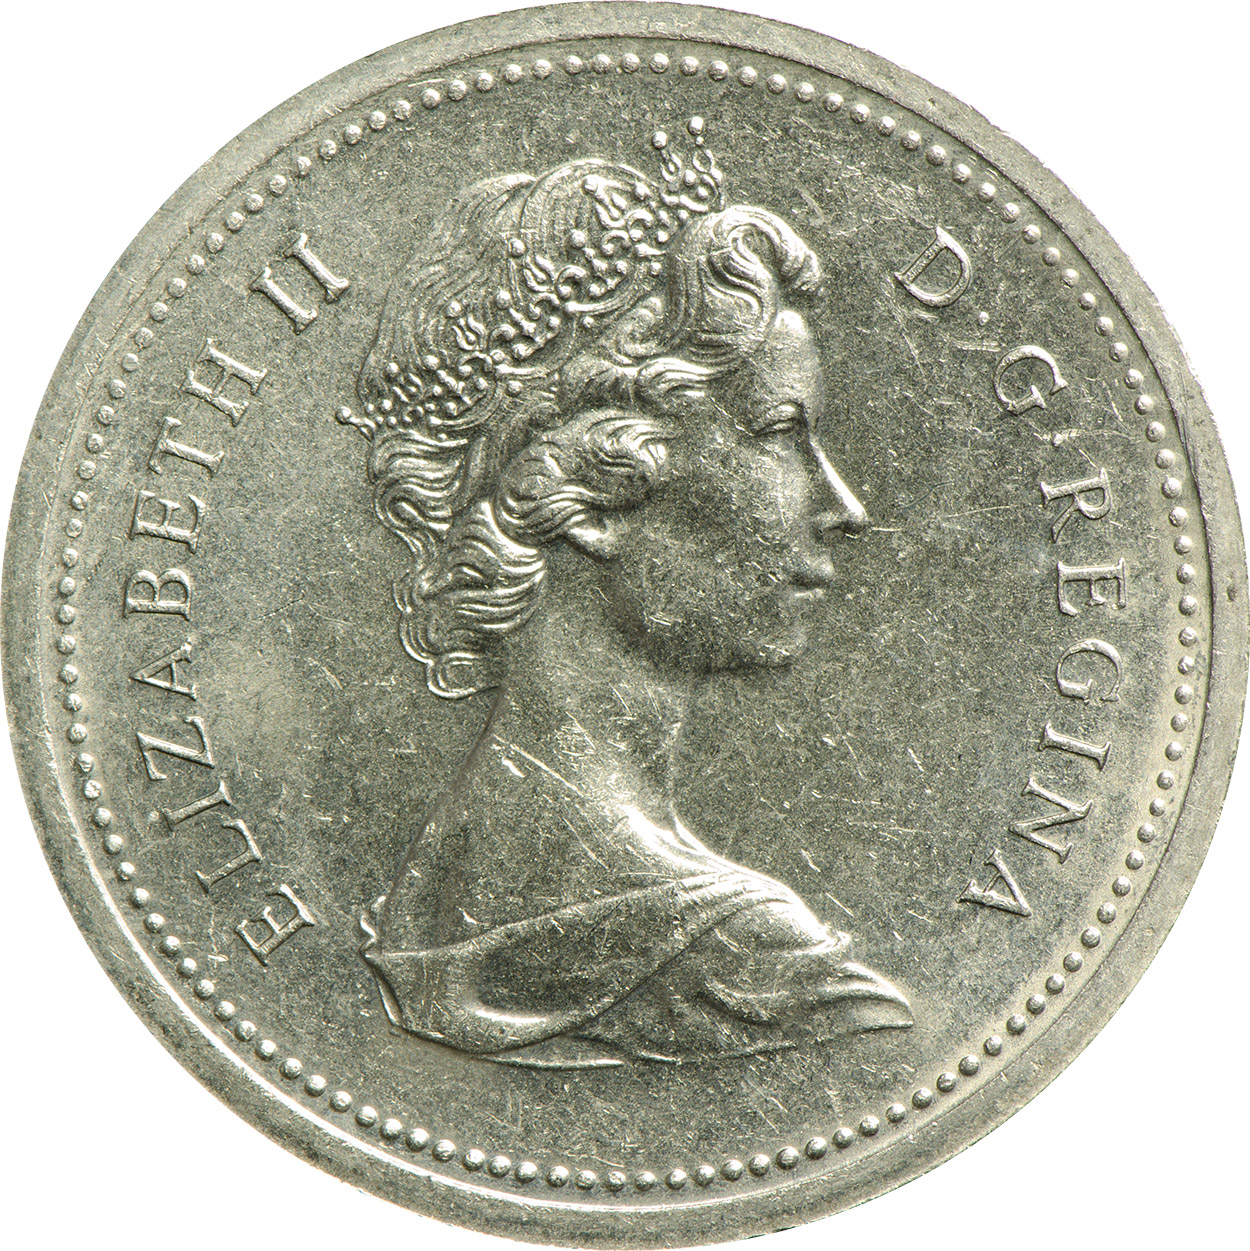 AU-50 - 1 dollar 1965 to 1989 - Elizabeth II